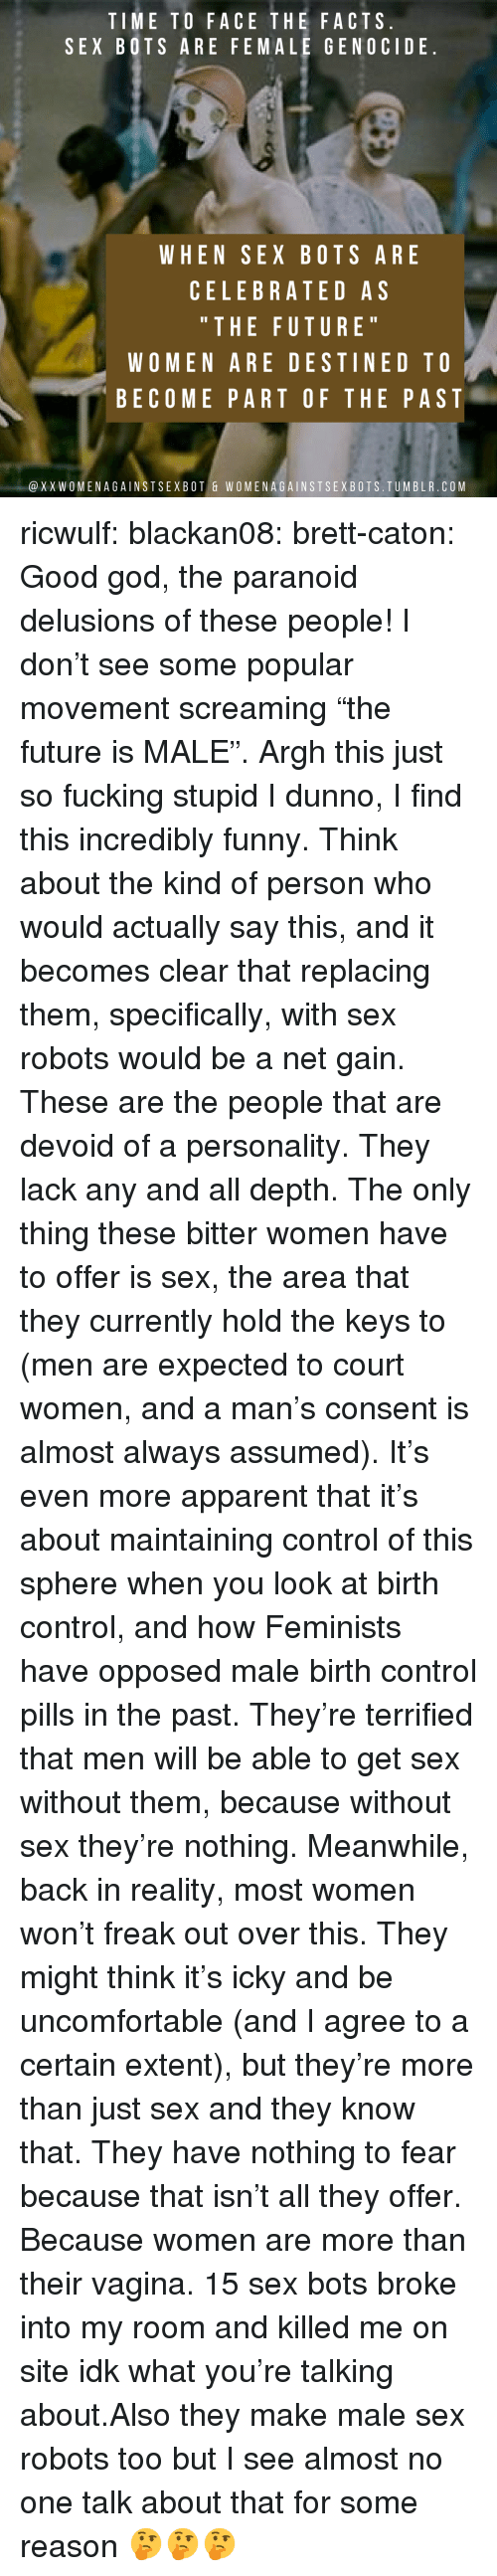 """Celebrated: TIME TO FACE THE FACTS  SEX BOTS ARE FEMALE GENOCIDE  WHEN SEX BOTS ARE  CELEBRATED AS  """" THE FUTURE  WOMEN ARE DESTINED TO  BECOME PART OF THE PAST  @XXWOMENAGAINSTSEXBOT & WOMENAGAINSTSEXBOTS.TUMBLR.COM ricwulf:  blackan08:   brett-caton: Good god, the paranoid delusions of these people! I don't see some popular movement screaming """"the future is MALE"""". Argh this just so fucking stupid   I dunno, I find this incredibly funny. Think about the kind of person who would actually say this, and it becomes clear that replacing them, specifically, with sex robots would be a net gain. These are the people that are devoid of a personality. They lack any and all depth. The only thing these bitter women have to offer is sex, the area that they currently hold the keys to (men are expected to court women, and a man's consent is almost always assumed). It's even more apparent that it's about maintaining control of this sphere when you look at birth control, and how Feminists have opposed male birth control pills in the past.  They're terrified that men will be able to get sex without them, because without sex they're nothing. Meanwhile, back in reality, most women won't freak out over this. They might think it's icky and be uncomfortable (and I agree to a certain extent), but they're more than just sex and they know that. They have nothing to fear because that isn't all they offer. Because women are more than their vagina.   15 sex bots broke into my room and killed me on site idk what you're talking about.Also they make male sex robots too but I see almost no one talk about that for some reason 🤔🤔🤔"""